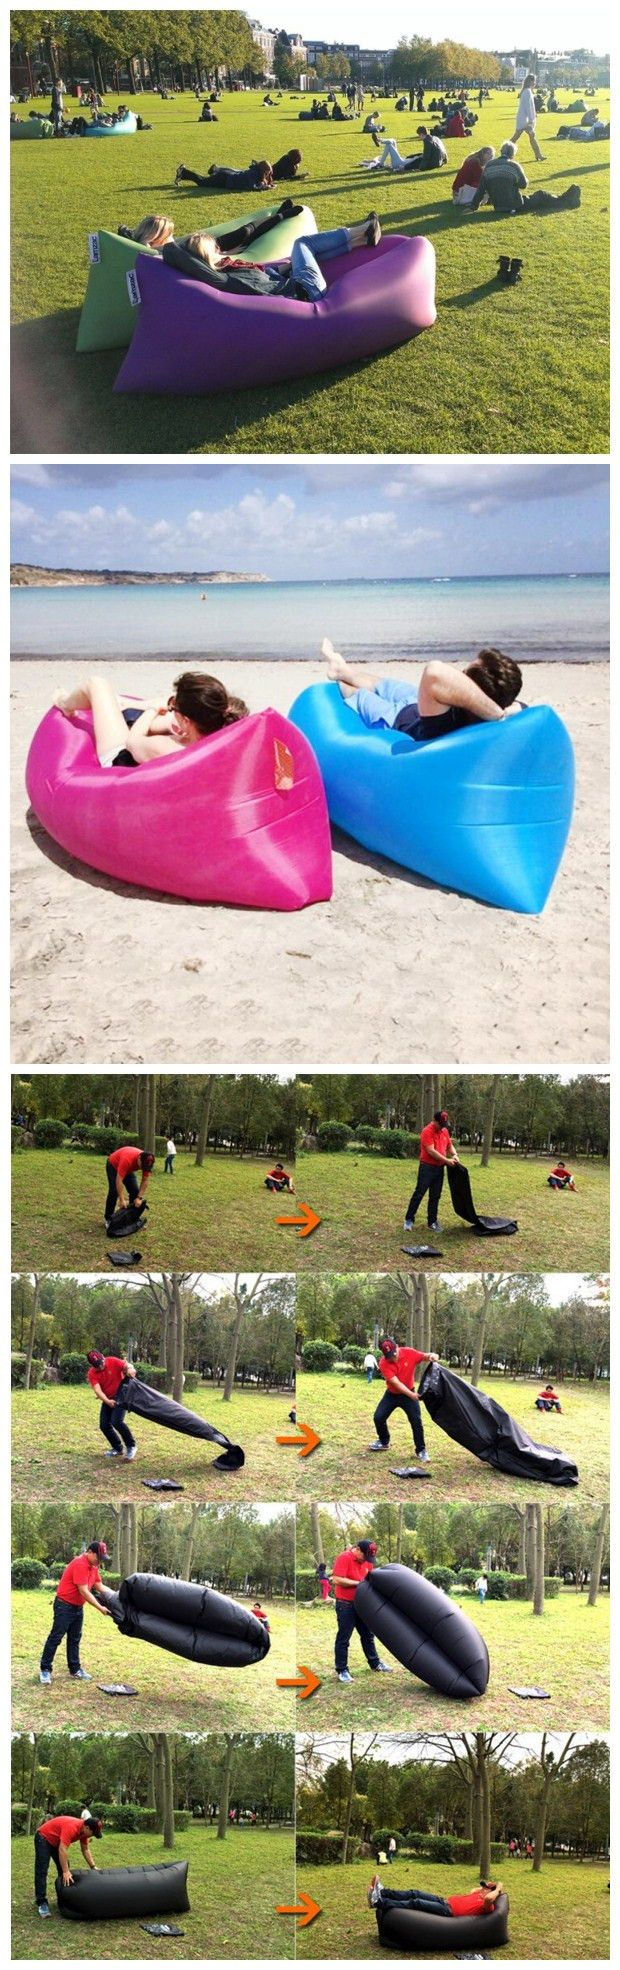 Sleeping bag suit moreover blow up air mattress as well bed inflatable - Travel Beach Lazy Sofa Fast Air Inflatable Sleeping Bed Lounger Camping Lay Bag Recliner